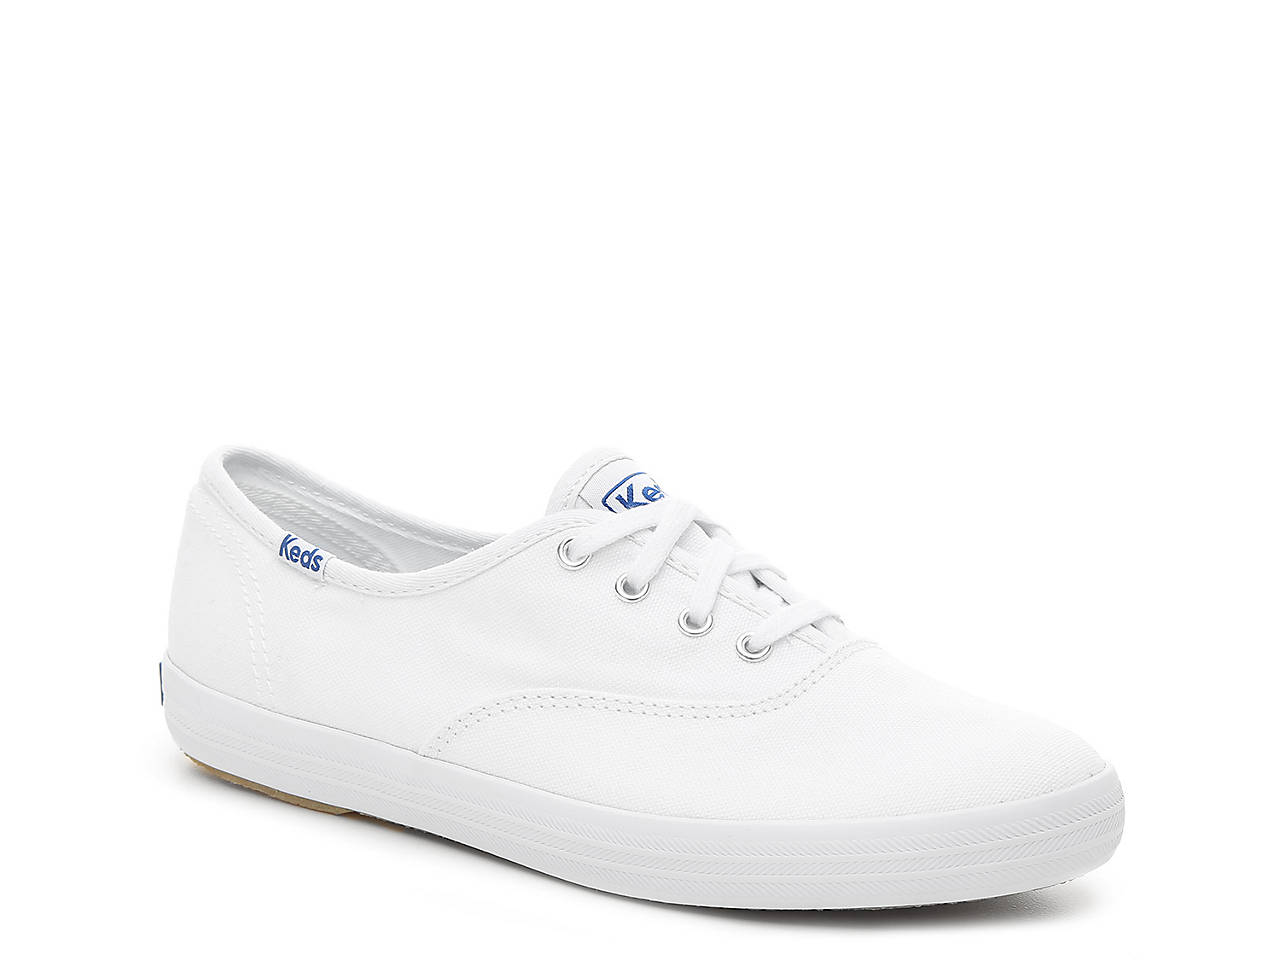 Champion Sneaker - Women's